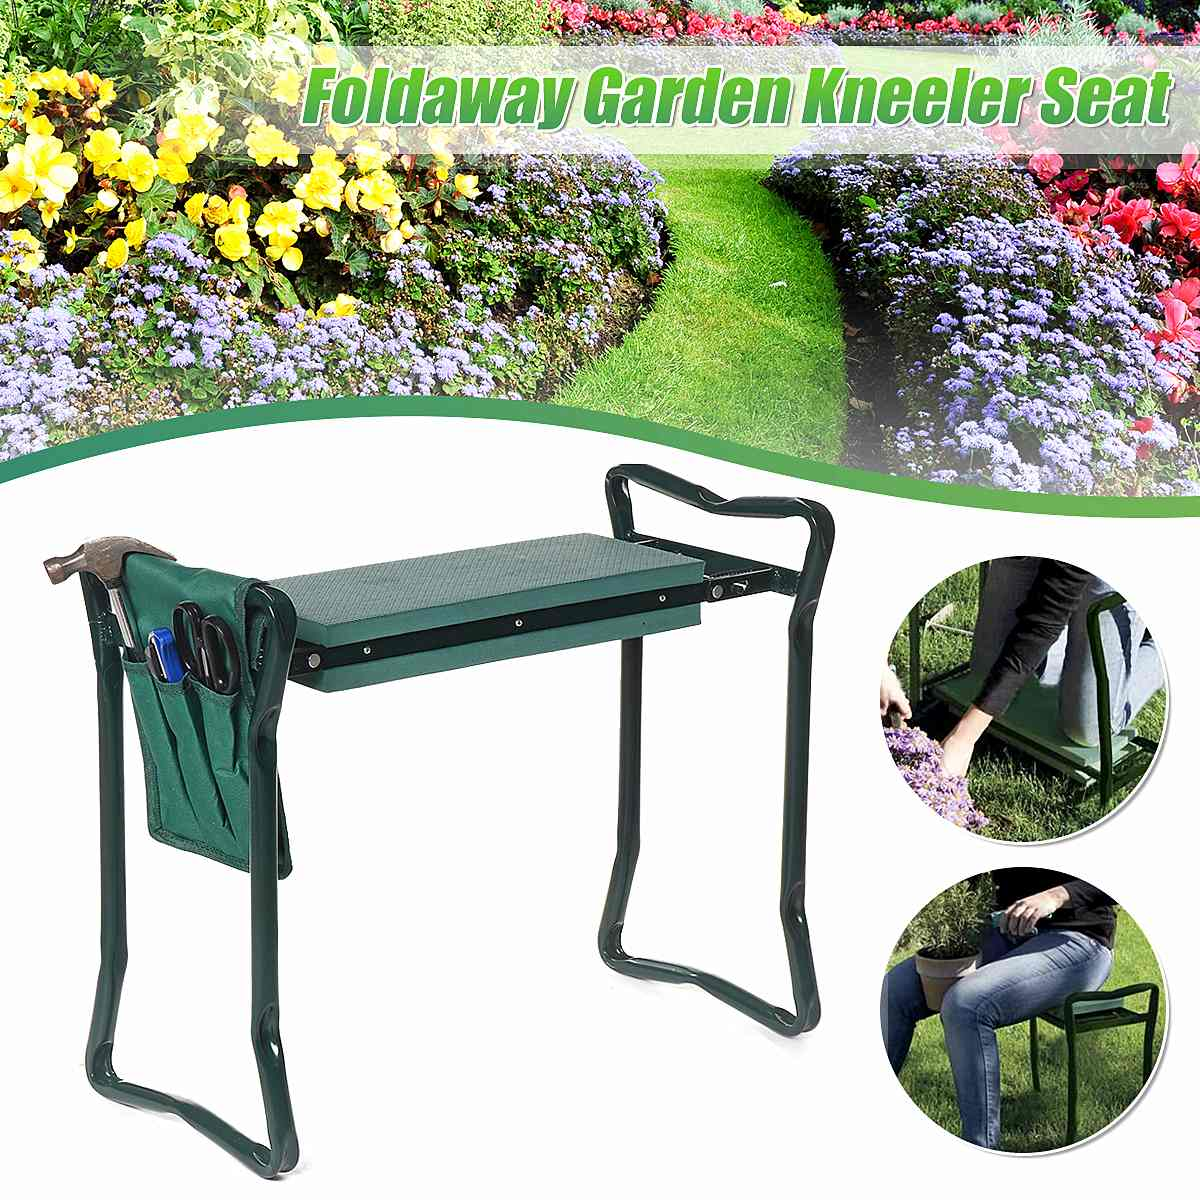 1Pcs Folding Garden Kneeler Tool Bag Pouch Tool Storage Bag Portable Garden Stool With EVA Foam Mat Multifunctional Chair Seat